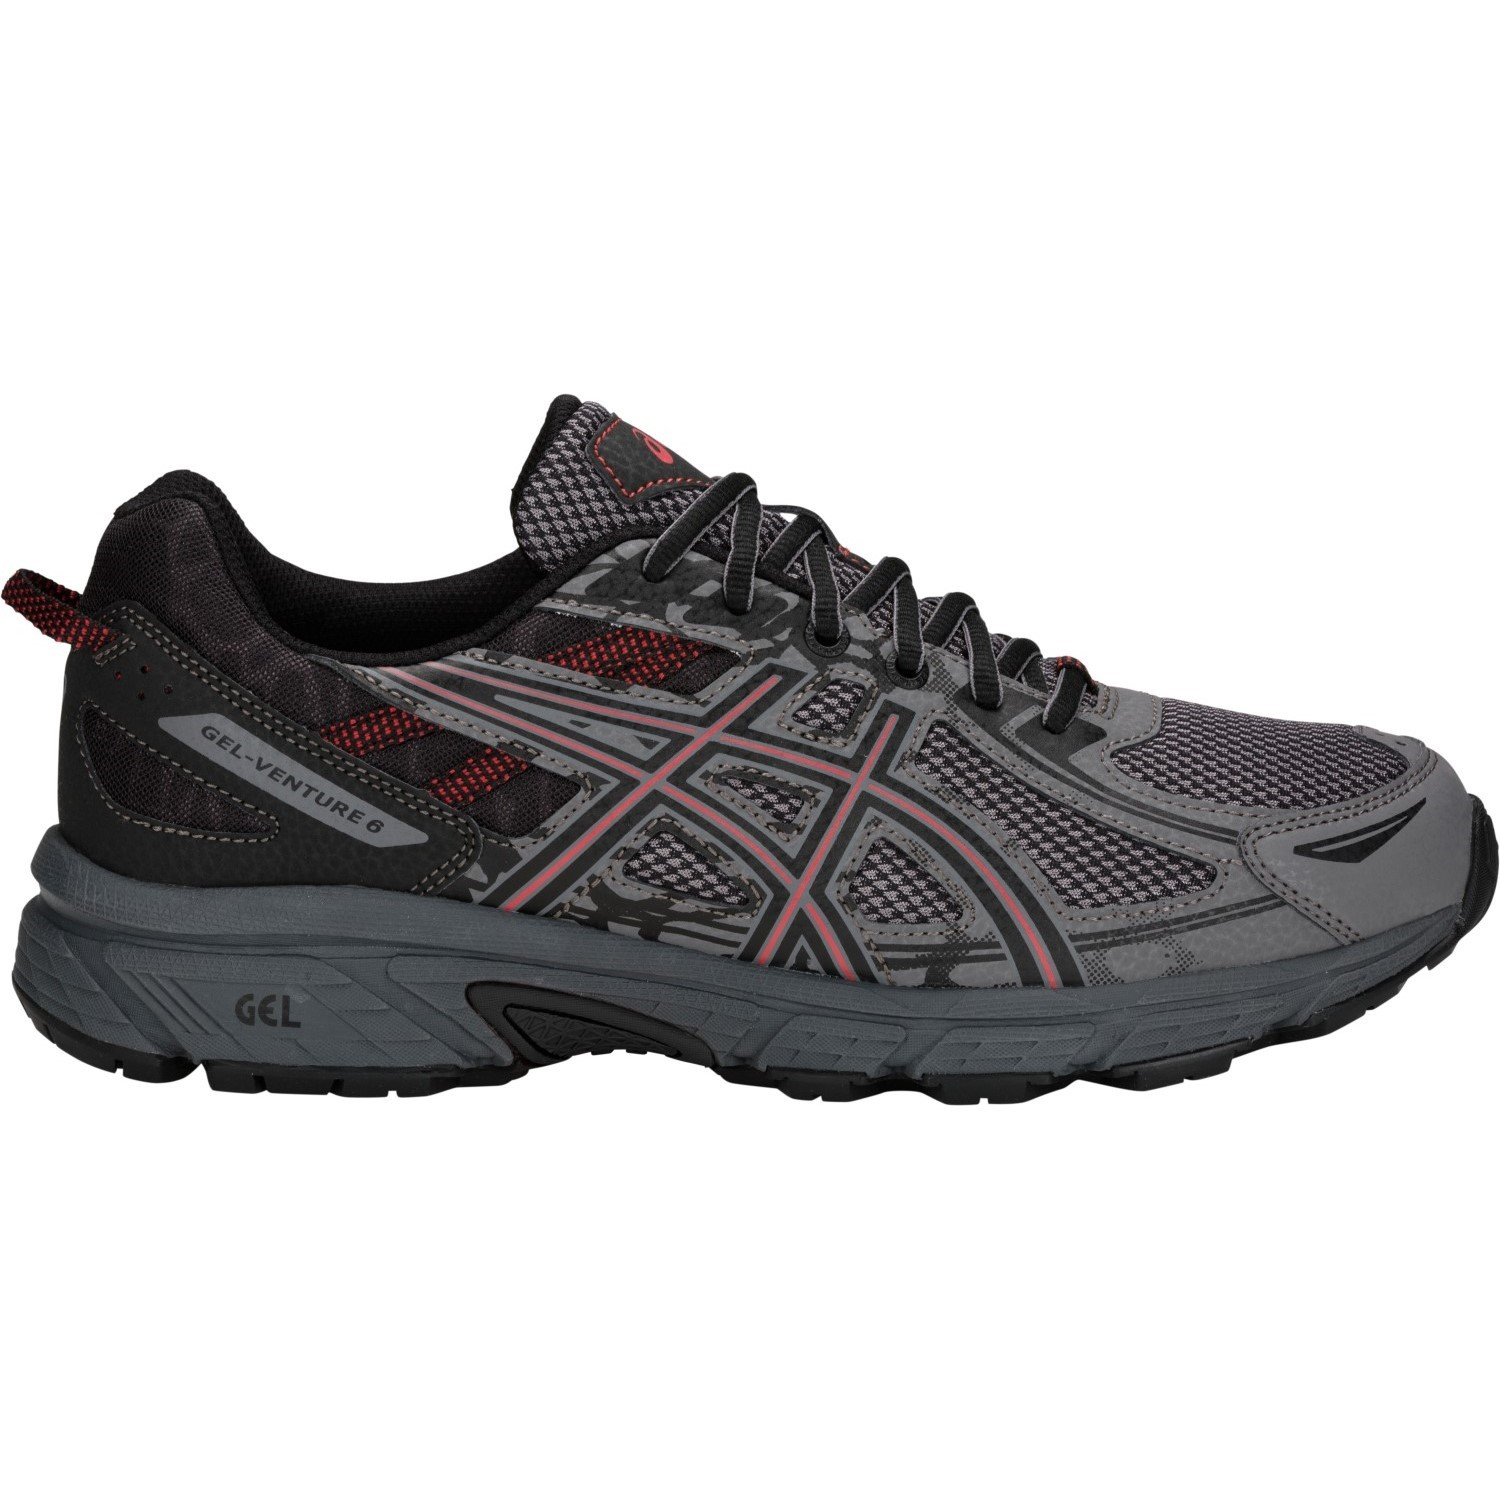 66c6cc54792 Asics Gel Venture 6 - Mens Trail Running Shoes - Carbon Cayenne ...